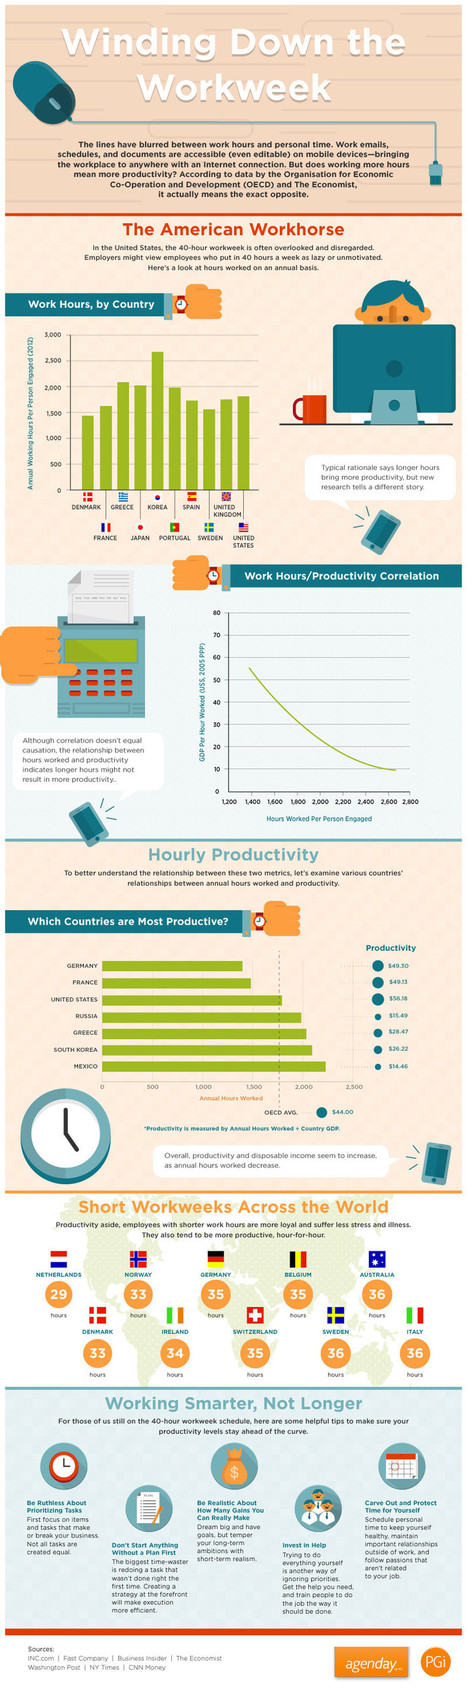 Can Working Longer Make You Less Productive? [INFOGRAPHIC] | MarketingHits | Scoop.it